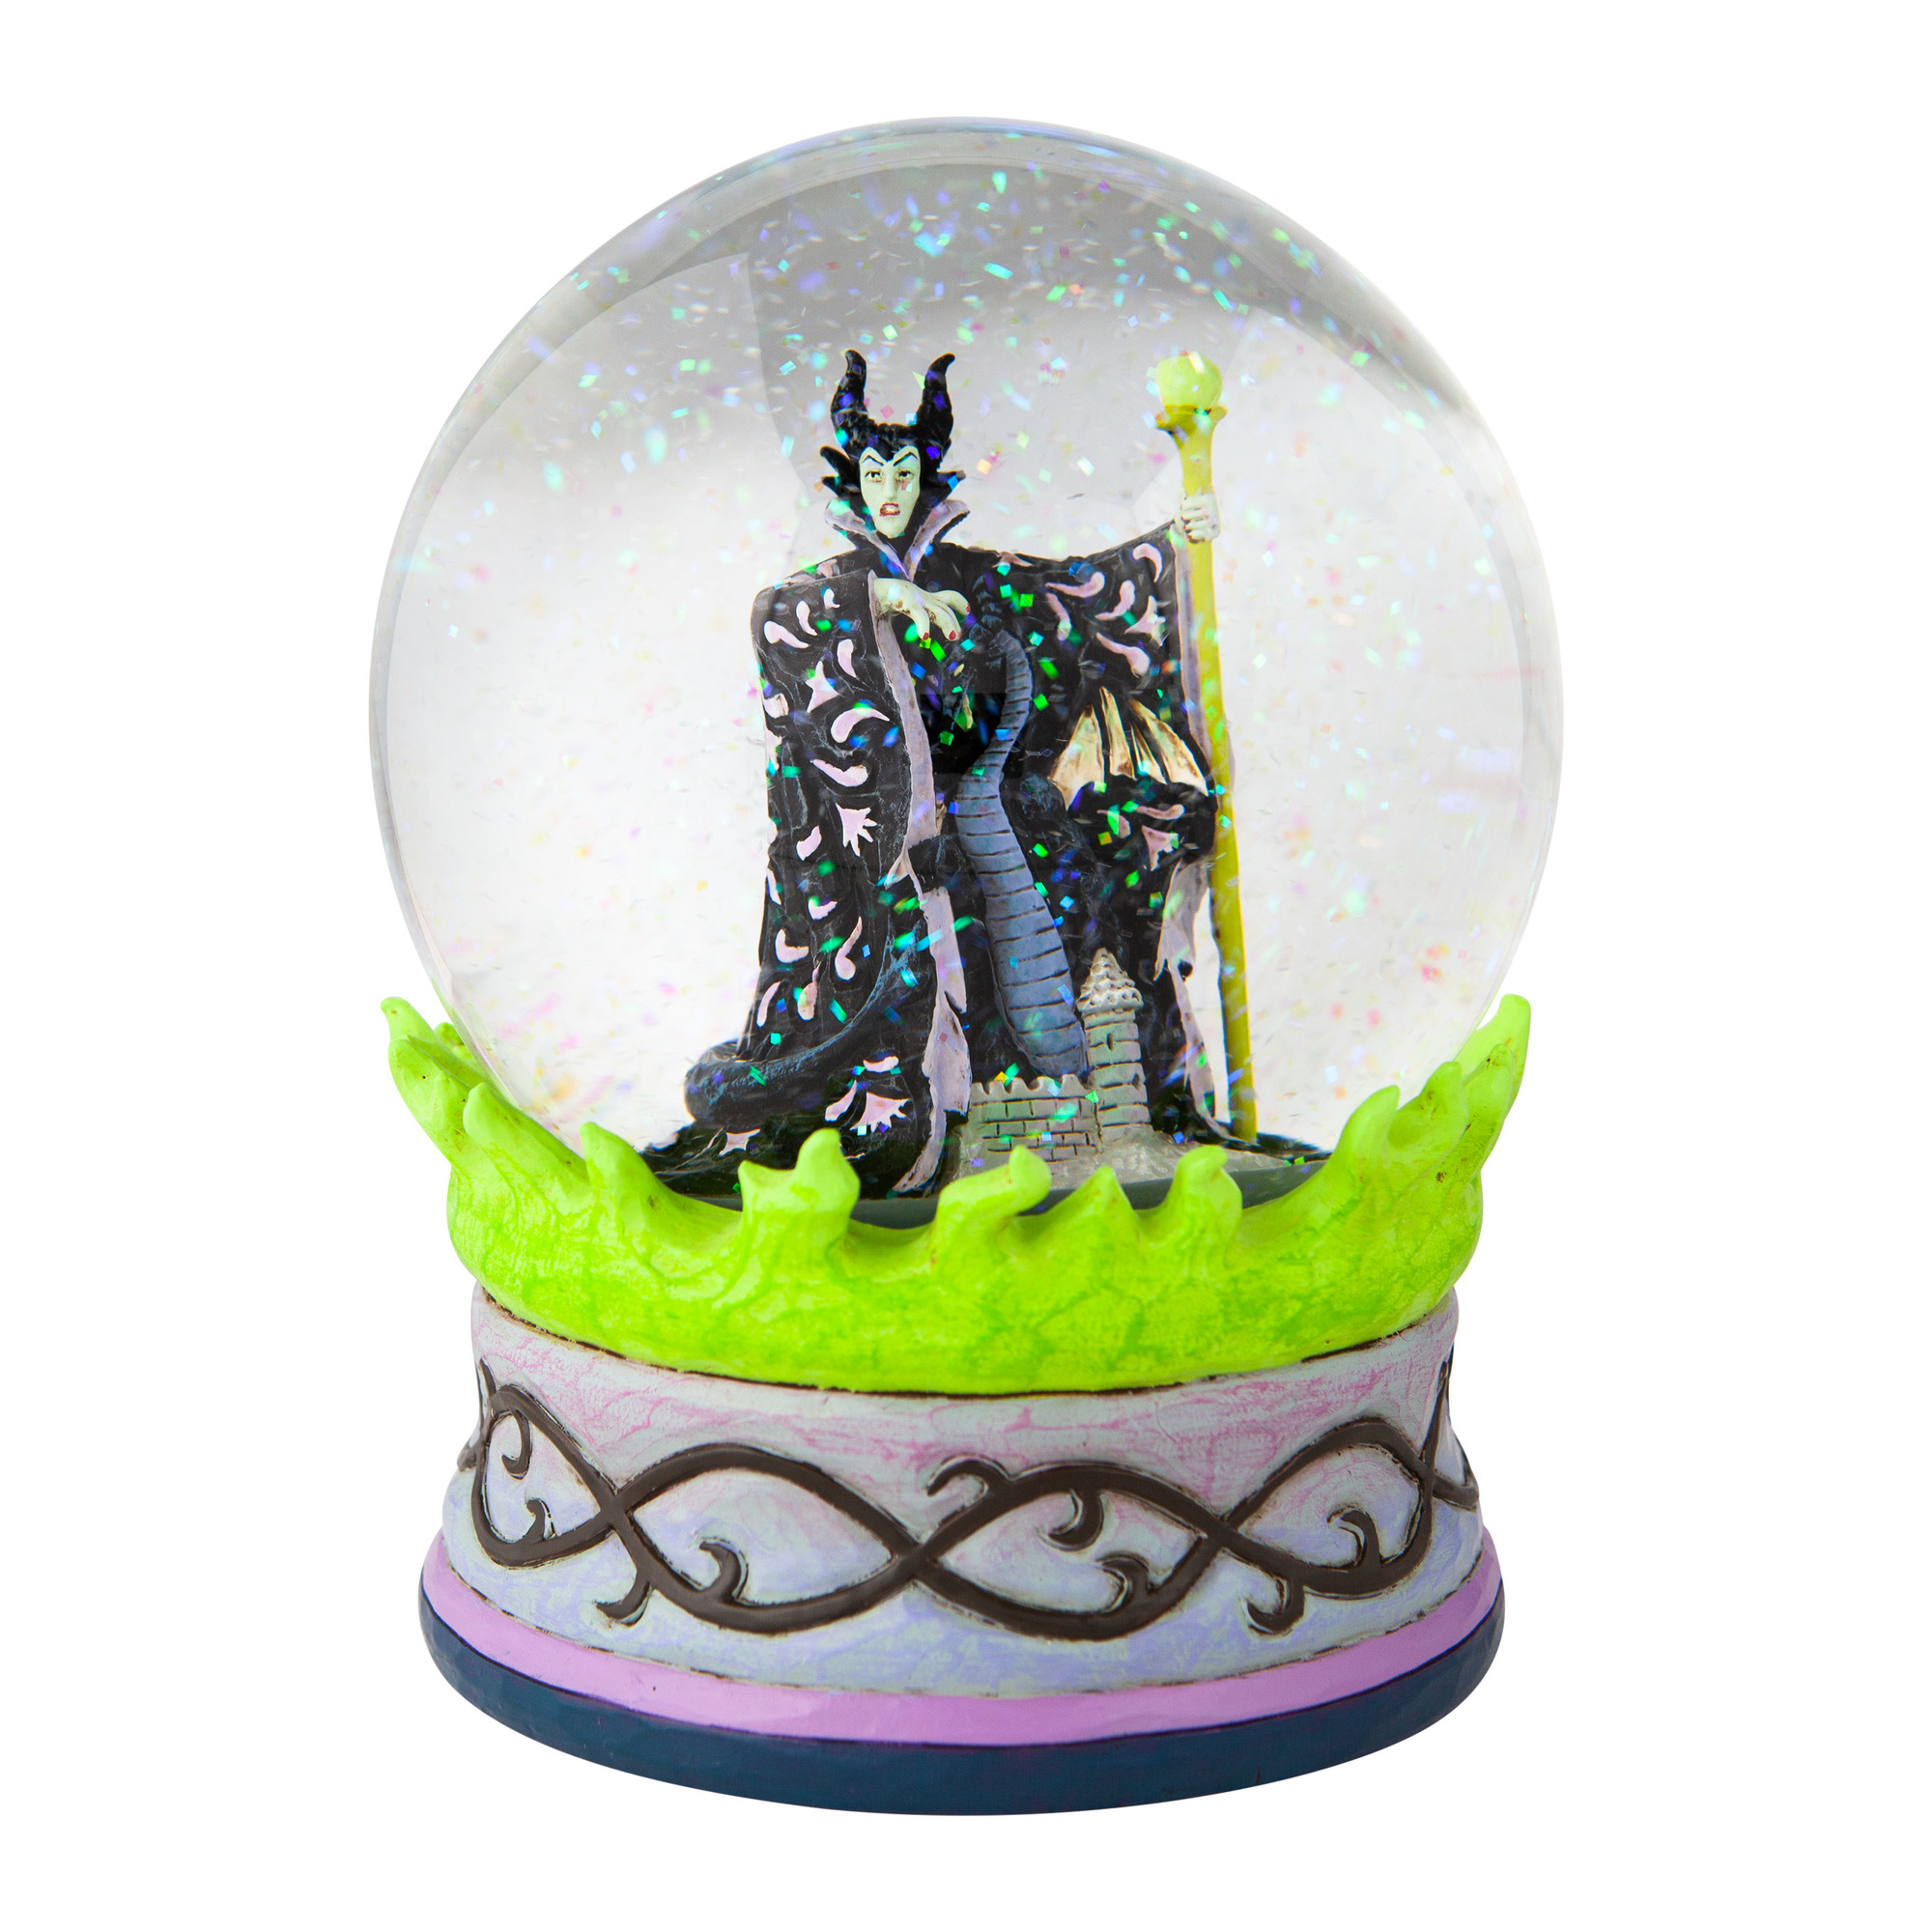 6007084 Maleficent Waterball